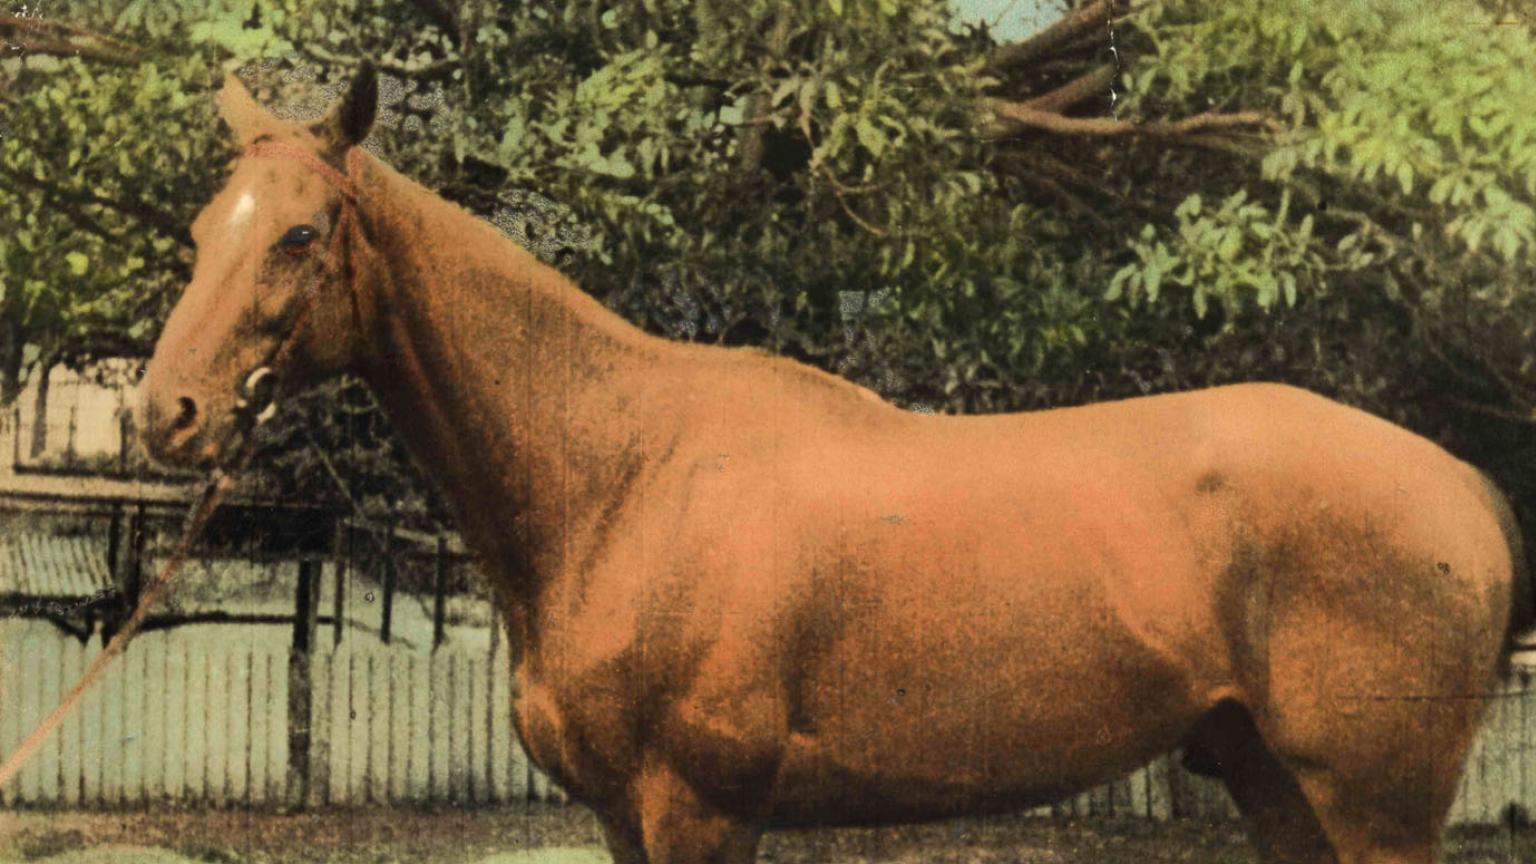 A hand-coloured image of Phar Lap, the 'red terror'. He is a beautiful horse. He stands alone outside.